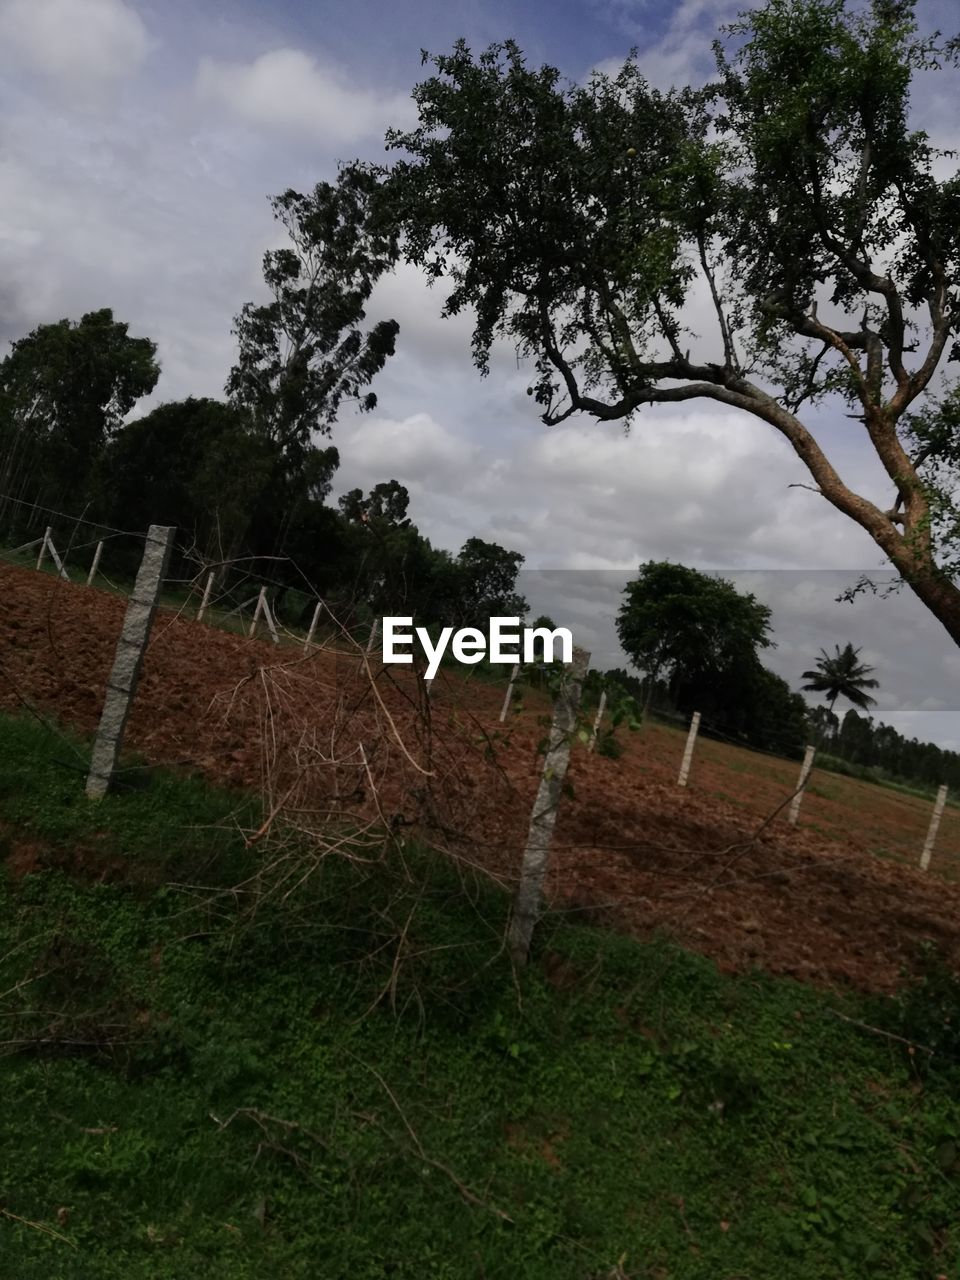 plant, tree, cloud - sky, sky, nature, grass, land, field, landscape, sport, no people, day, environment, outdoors, growth, barrier, tranquility, beauty in nature, boundary, fence